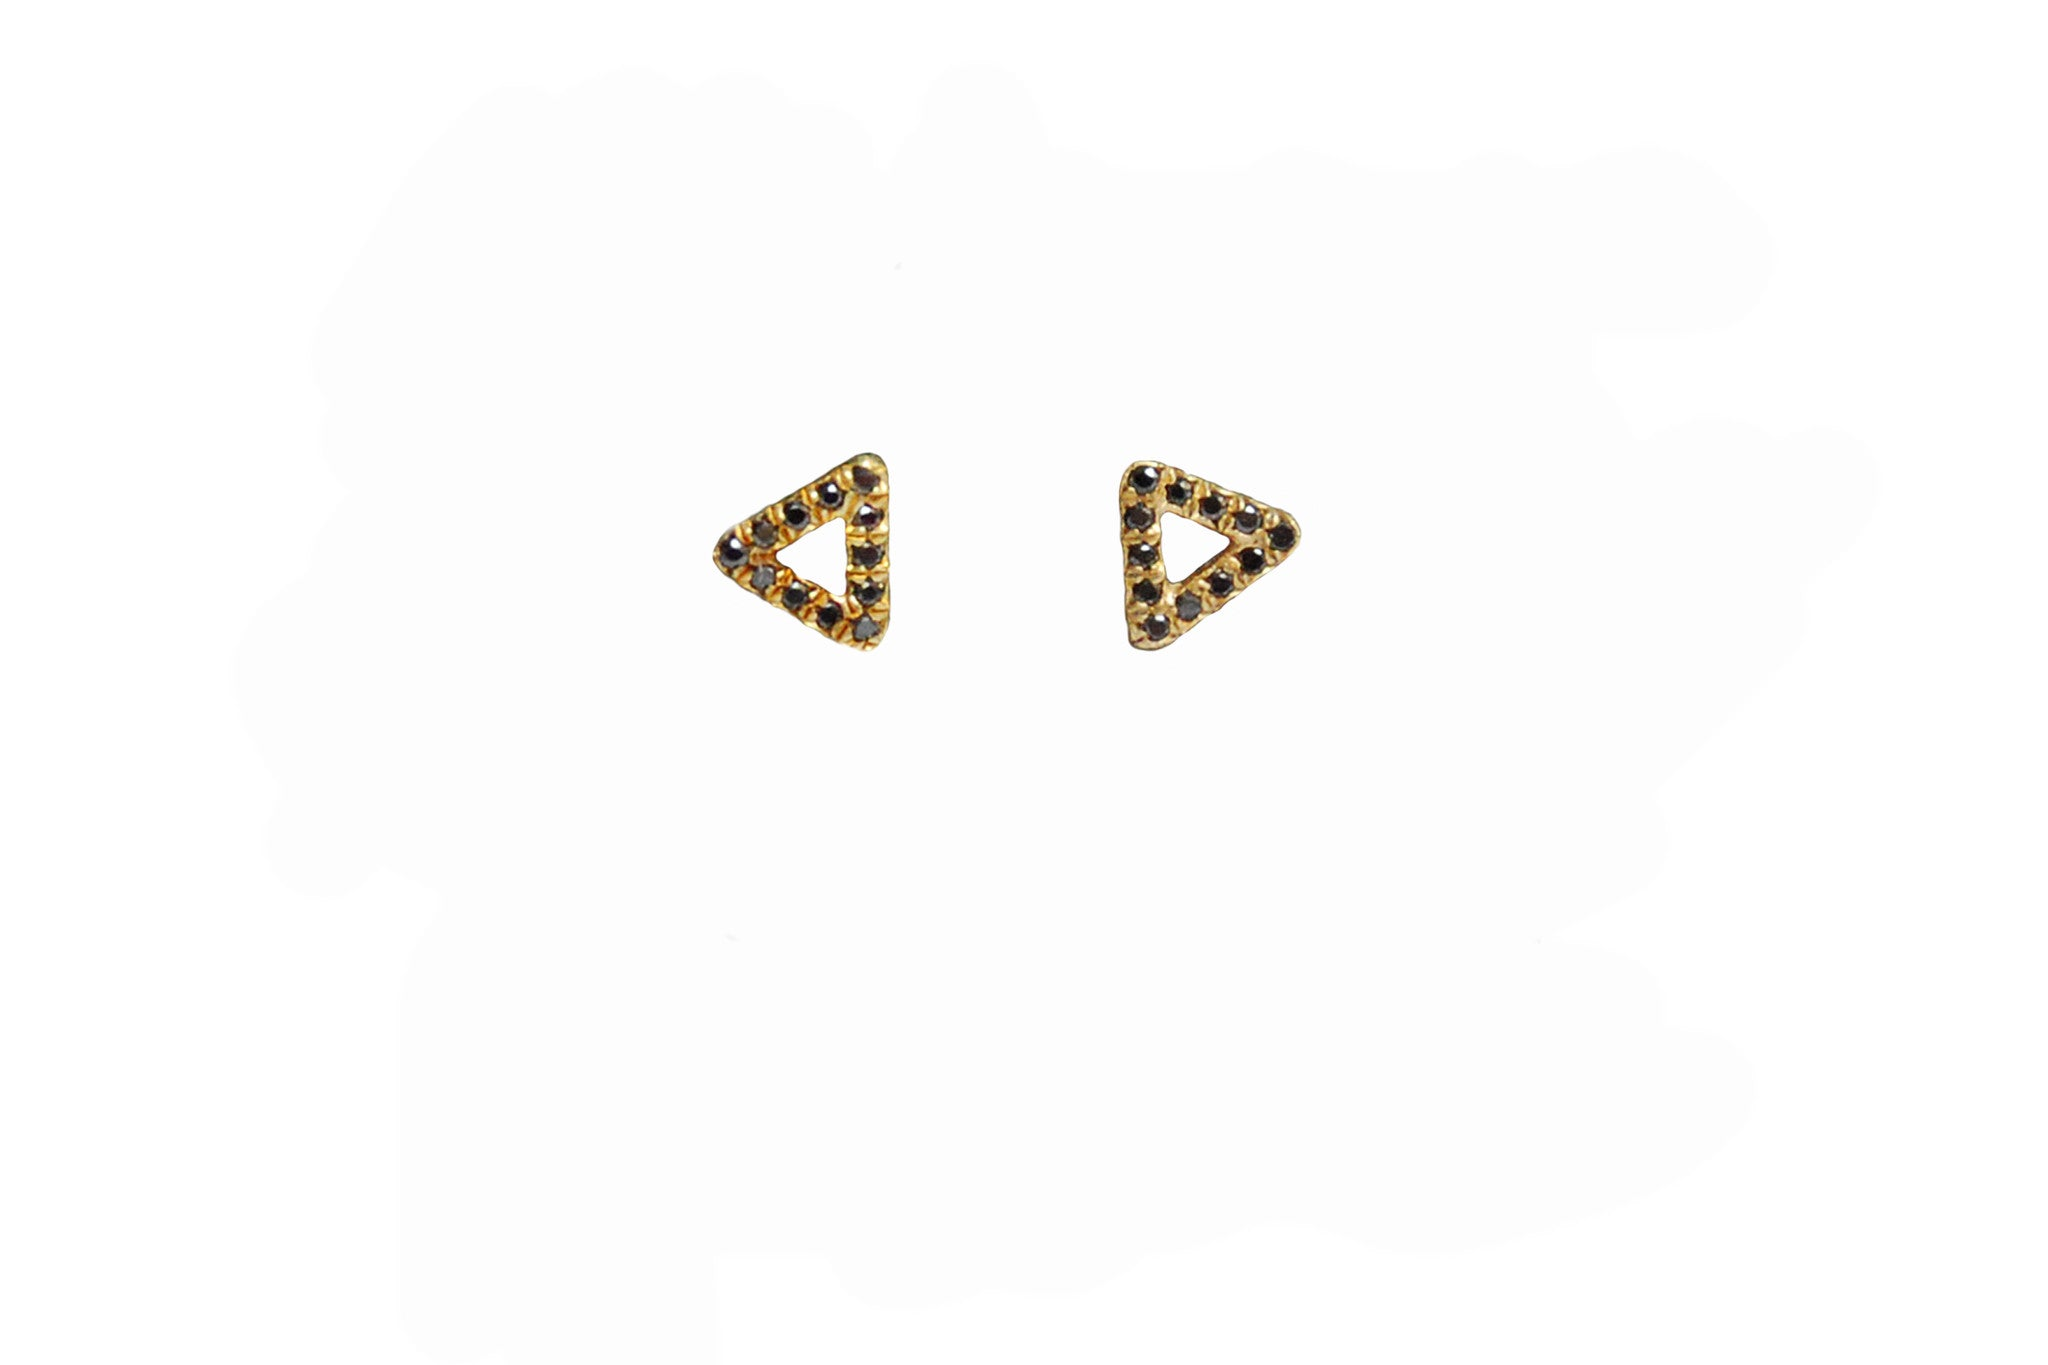 Micro Pave Diamonds Triangle Outline Stud Earrings Wendy Nichol Fine Jewelry Designer Delicate Petite Simple Micro Pave White or Black Diamonds 14k Gold Yellow Rose White Handmade in NYC New York City Triangle First Second Ear Piercing Snug Helix Cartilage diamond stud earring